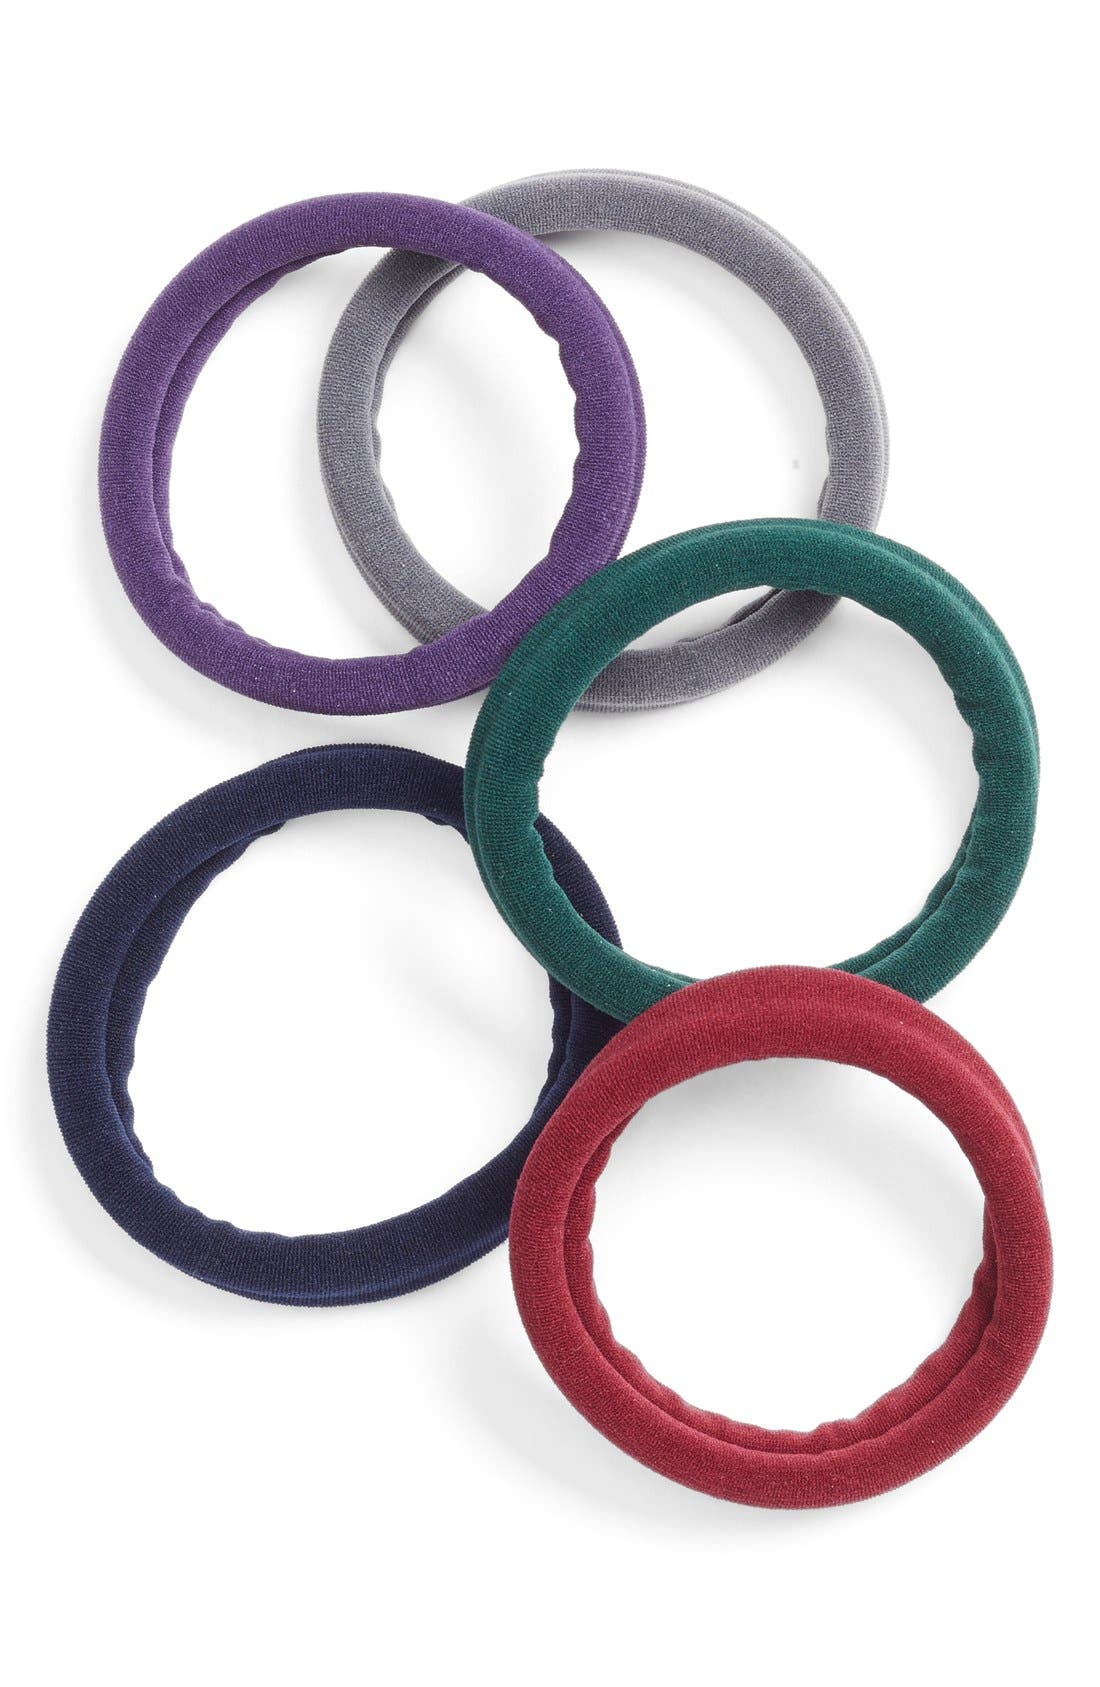 Set of 5 Sport Ponytail Holders,                             Main thumbnail 6, color,